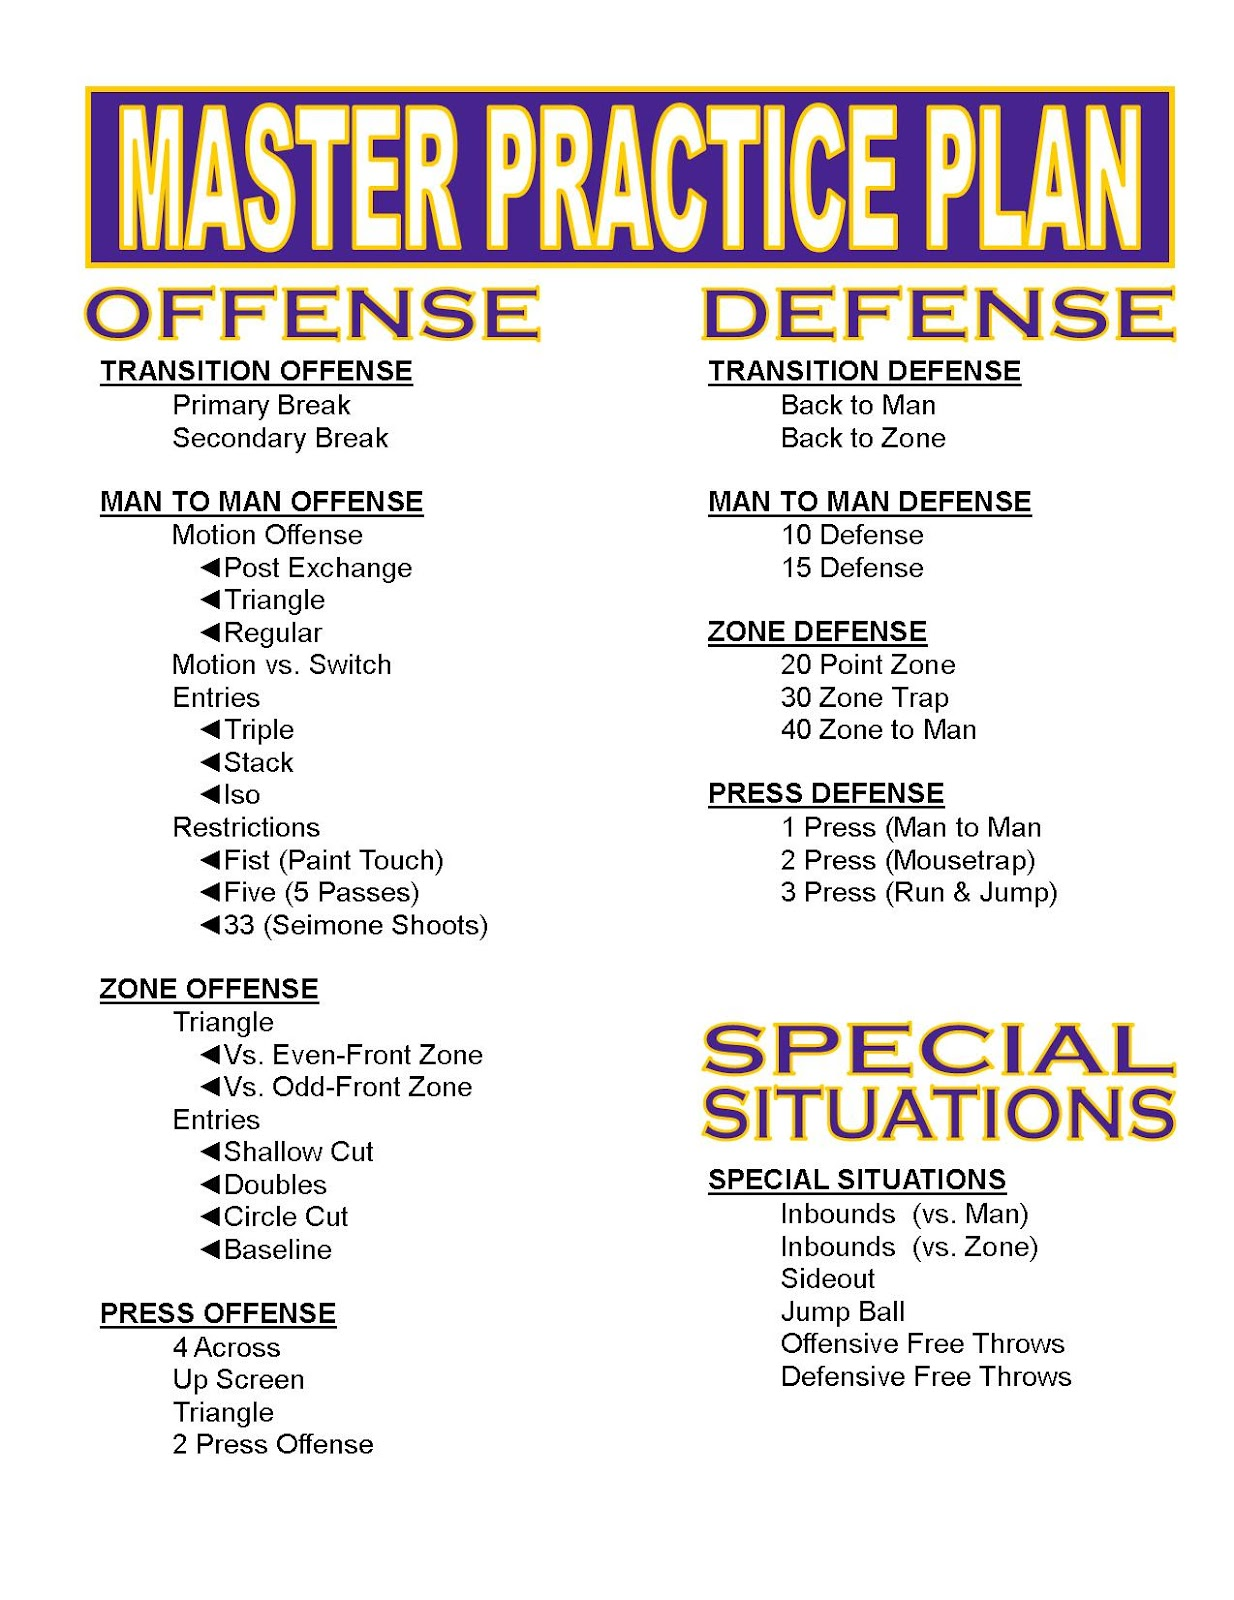 HOOP THOUGHTS: DO YOU HAVE A MASTER PRACTICE PLAN?